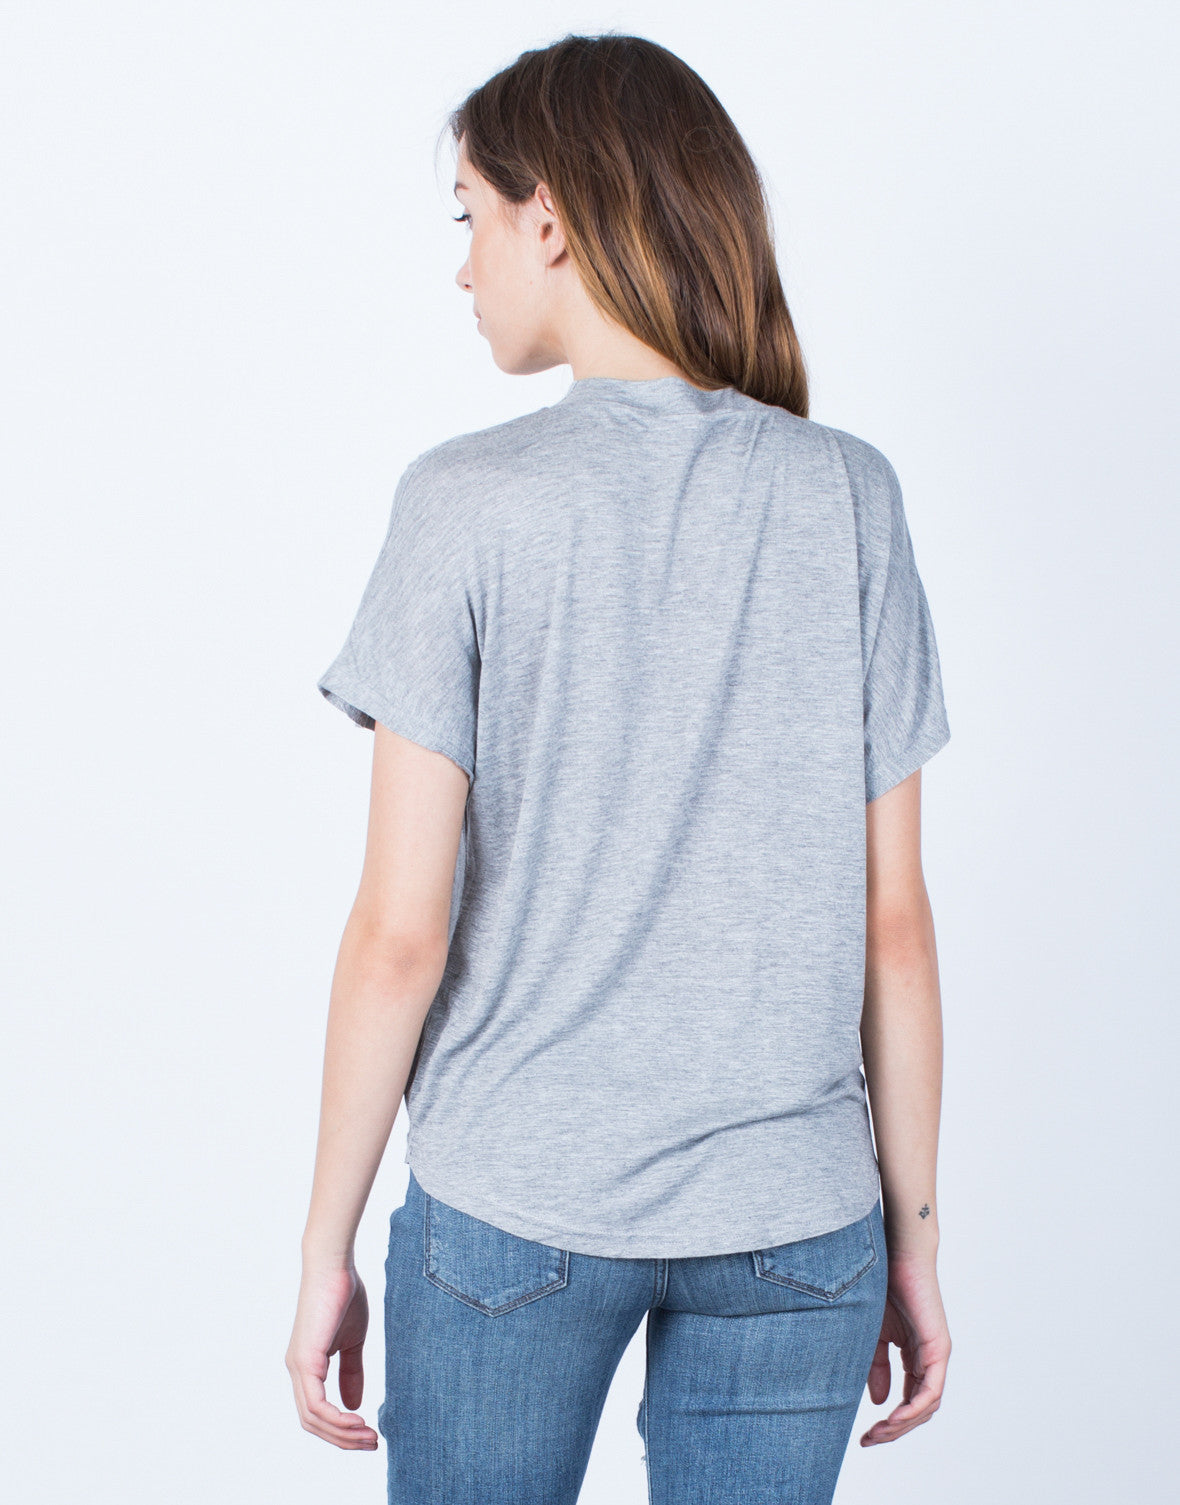 Back View of Mock Neck Tee